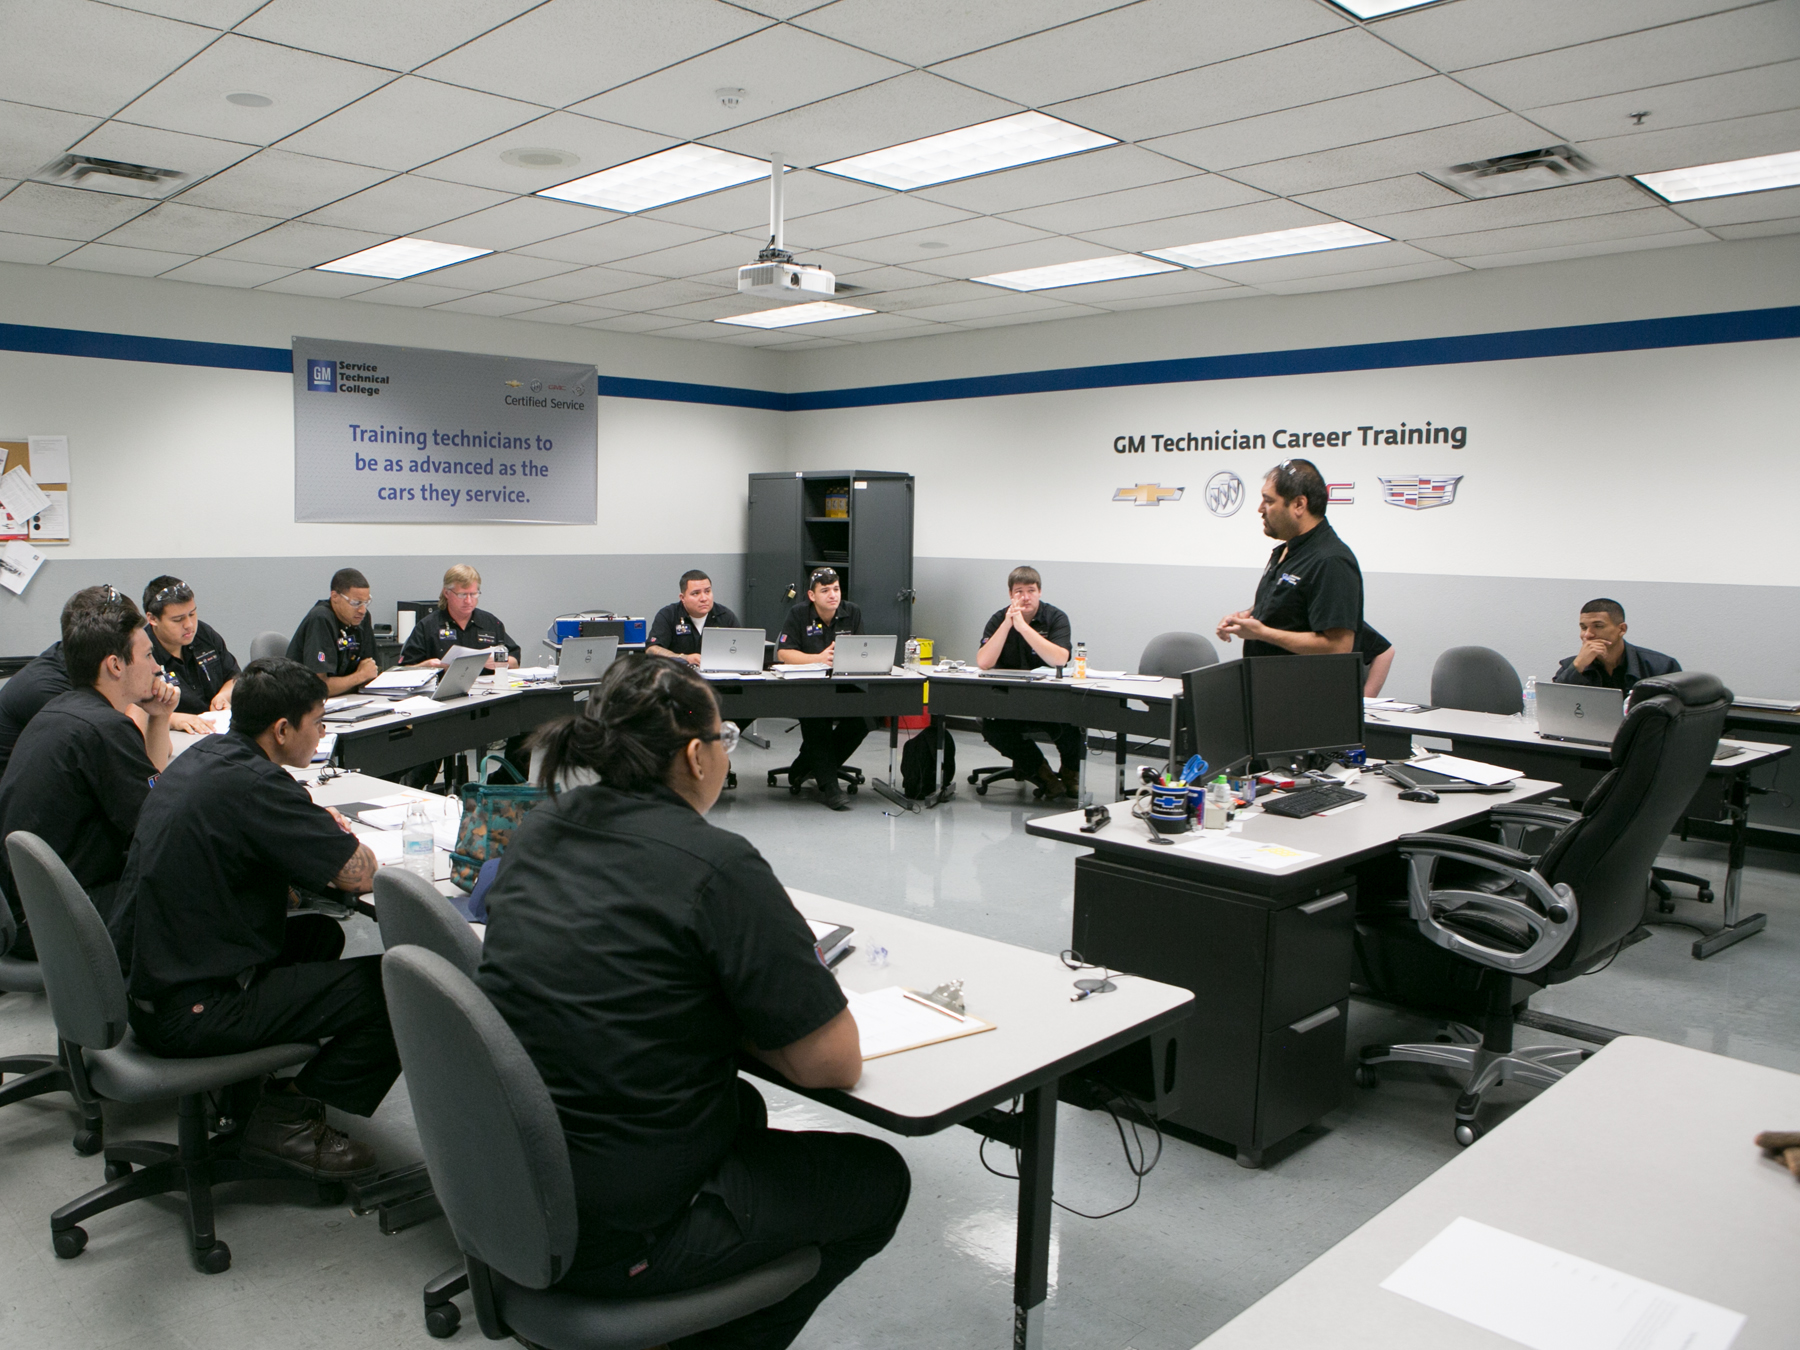 UTI students and Instructor in the GM classroom learning